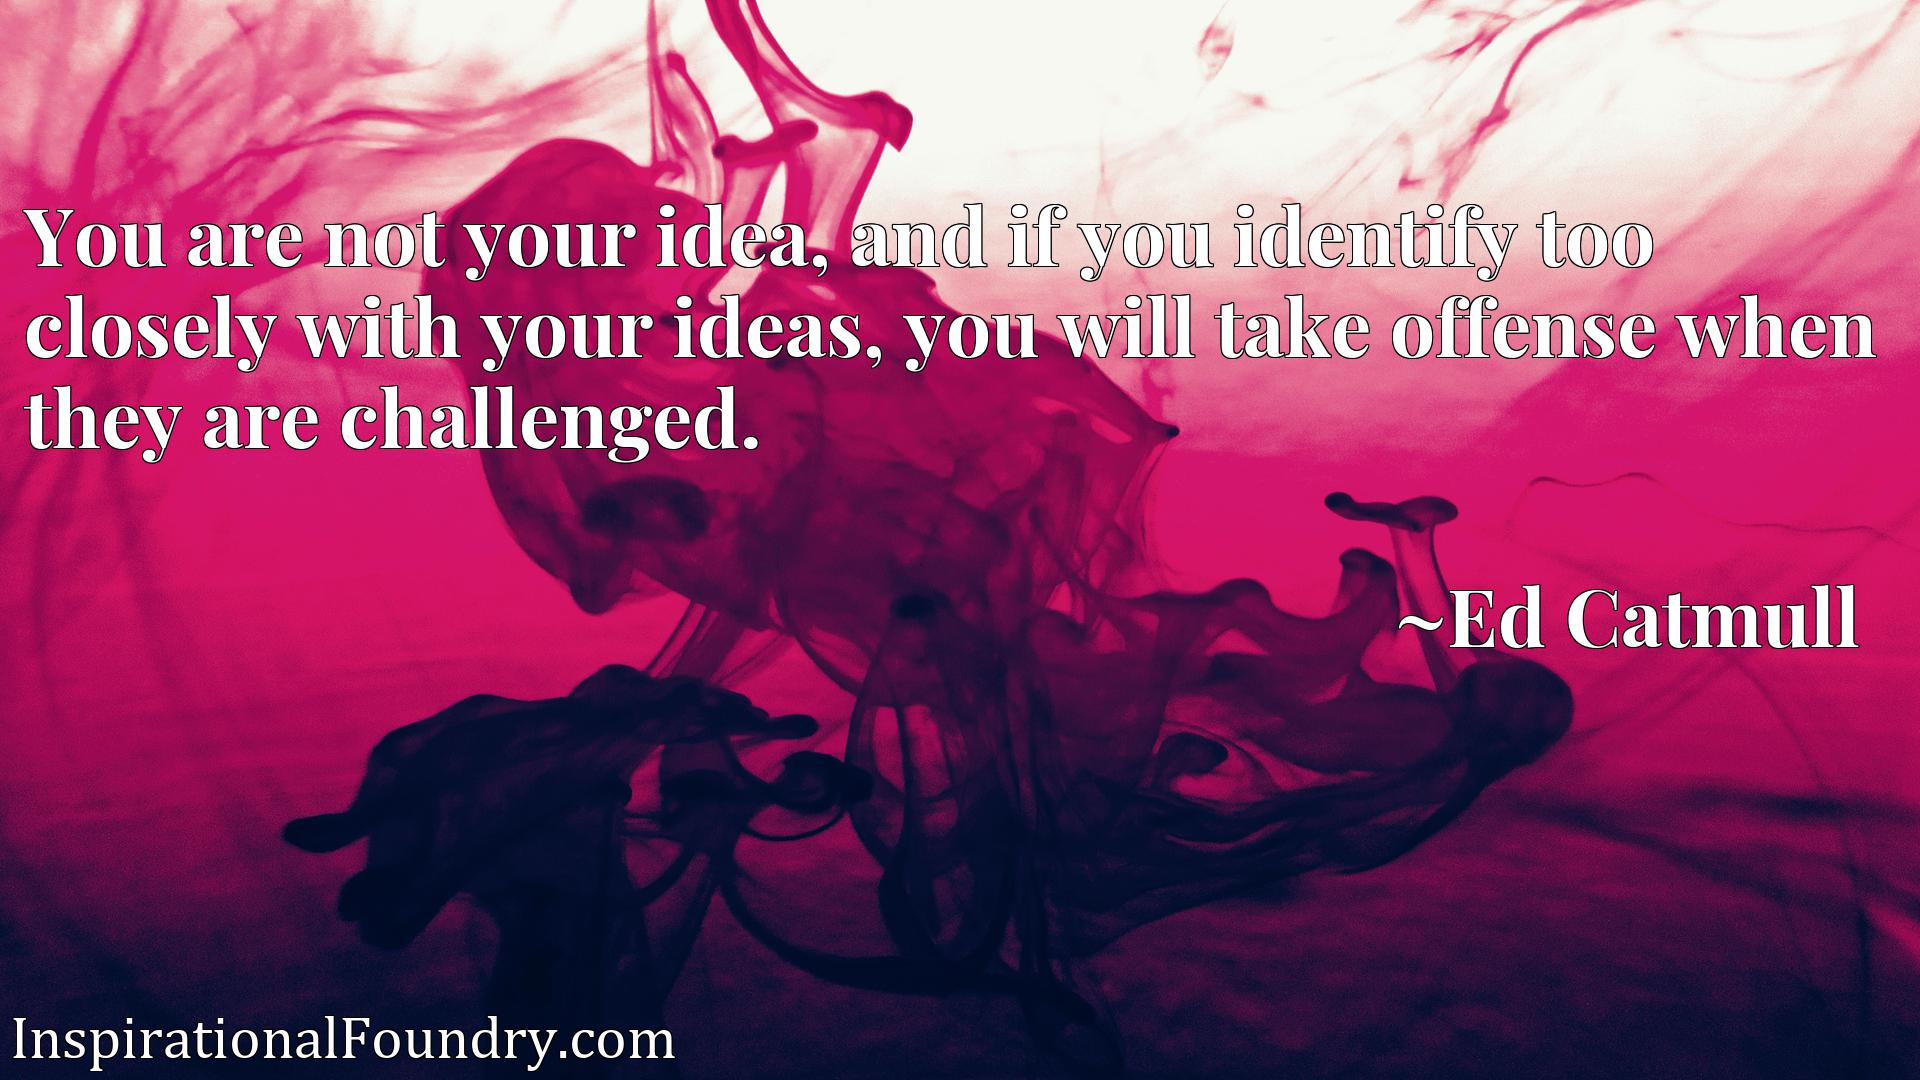 You are not your idea, and if you identify too closely with your ideas, you will take offense when they are challenged.